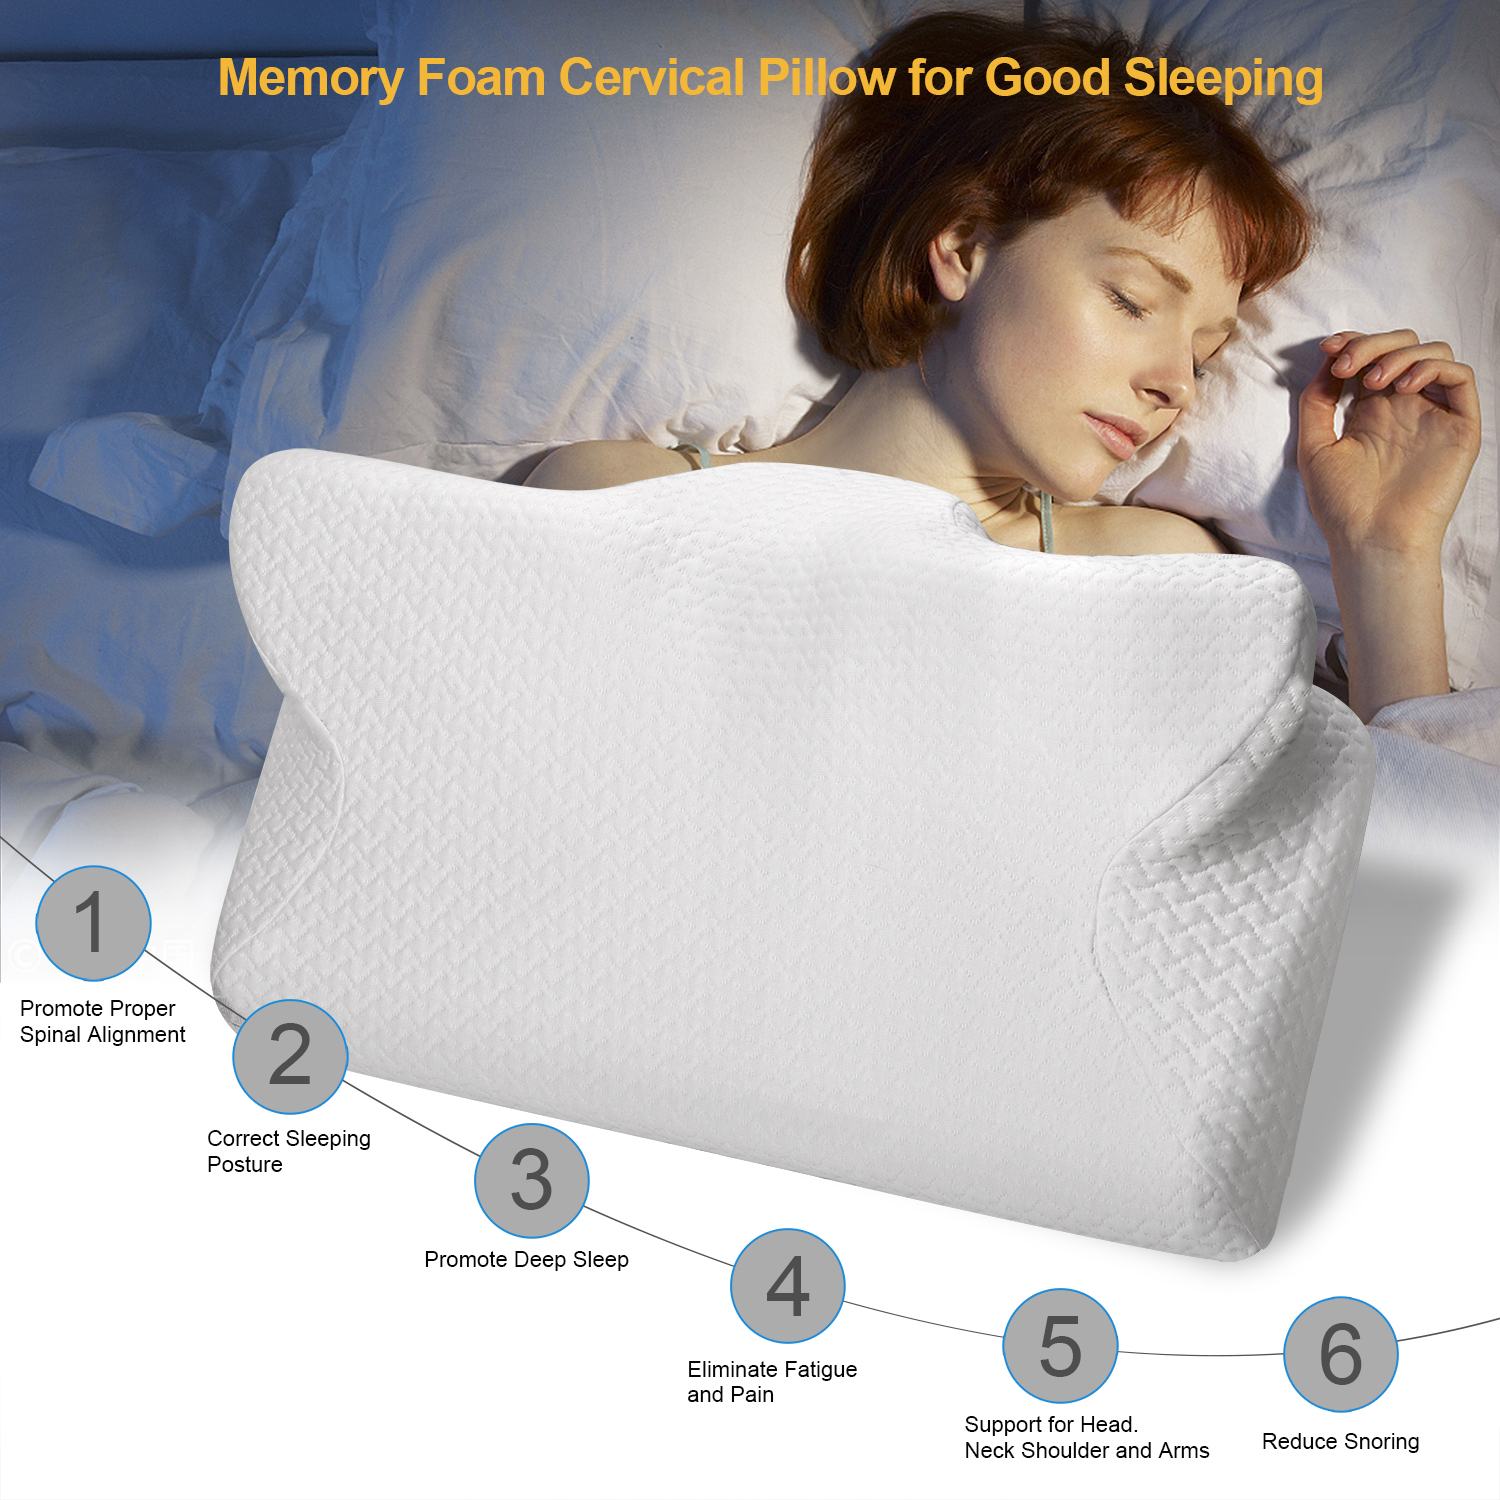 CPAP PillowMemory Foam Neck PillowMassage Ergonomic Anti snoring Sleeping Pillow Aid Bedding Supplies with Pillowcase-in Sleep & Snoring from Beauty & Health